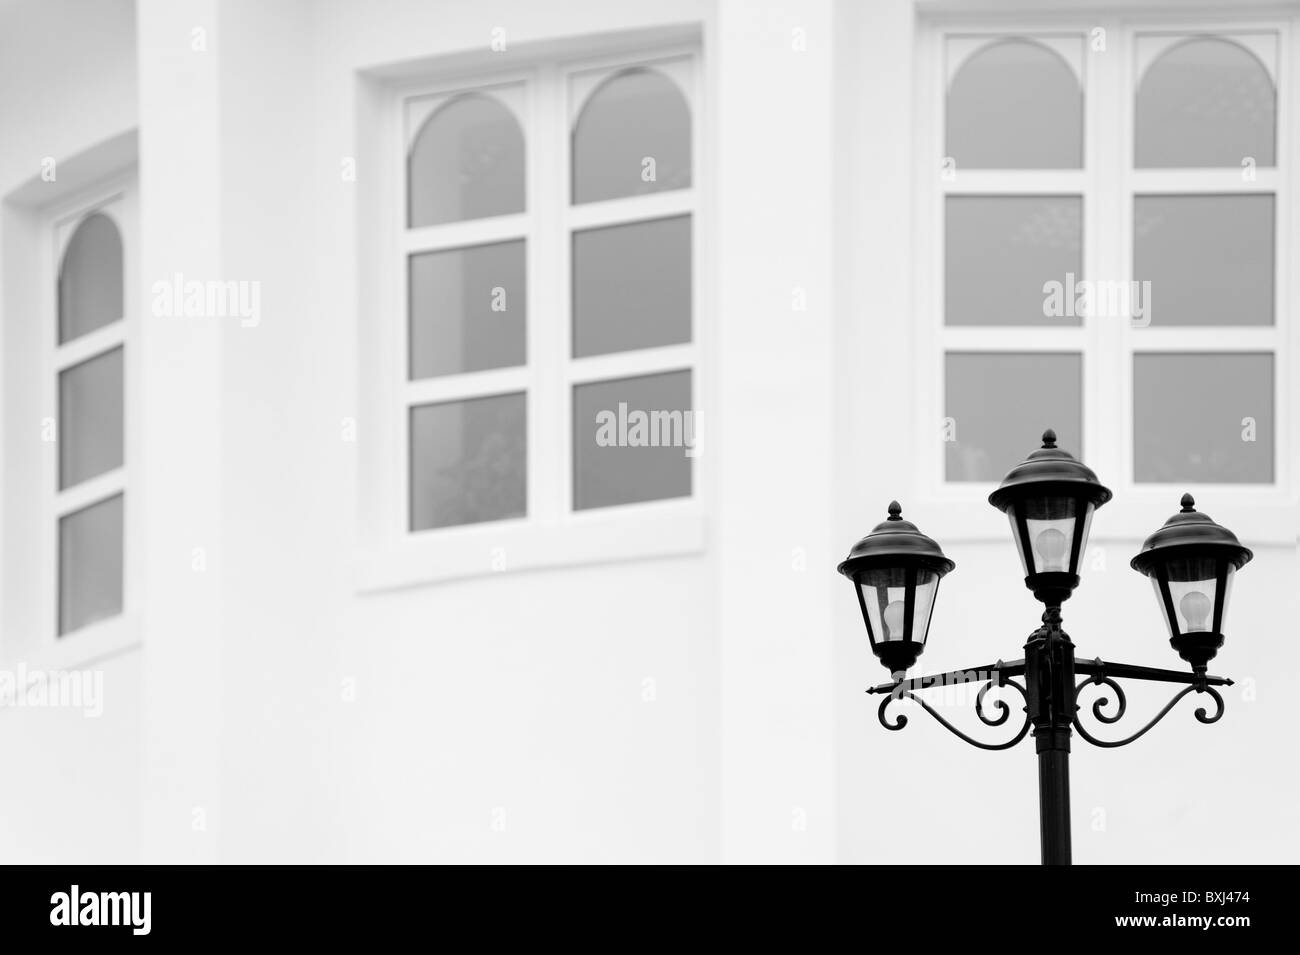 antiqued forged black street lamp against white wall with three windows - Stock Image